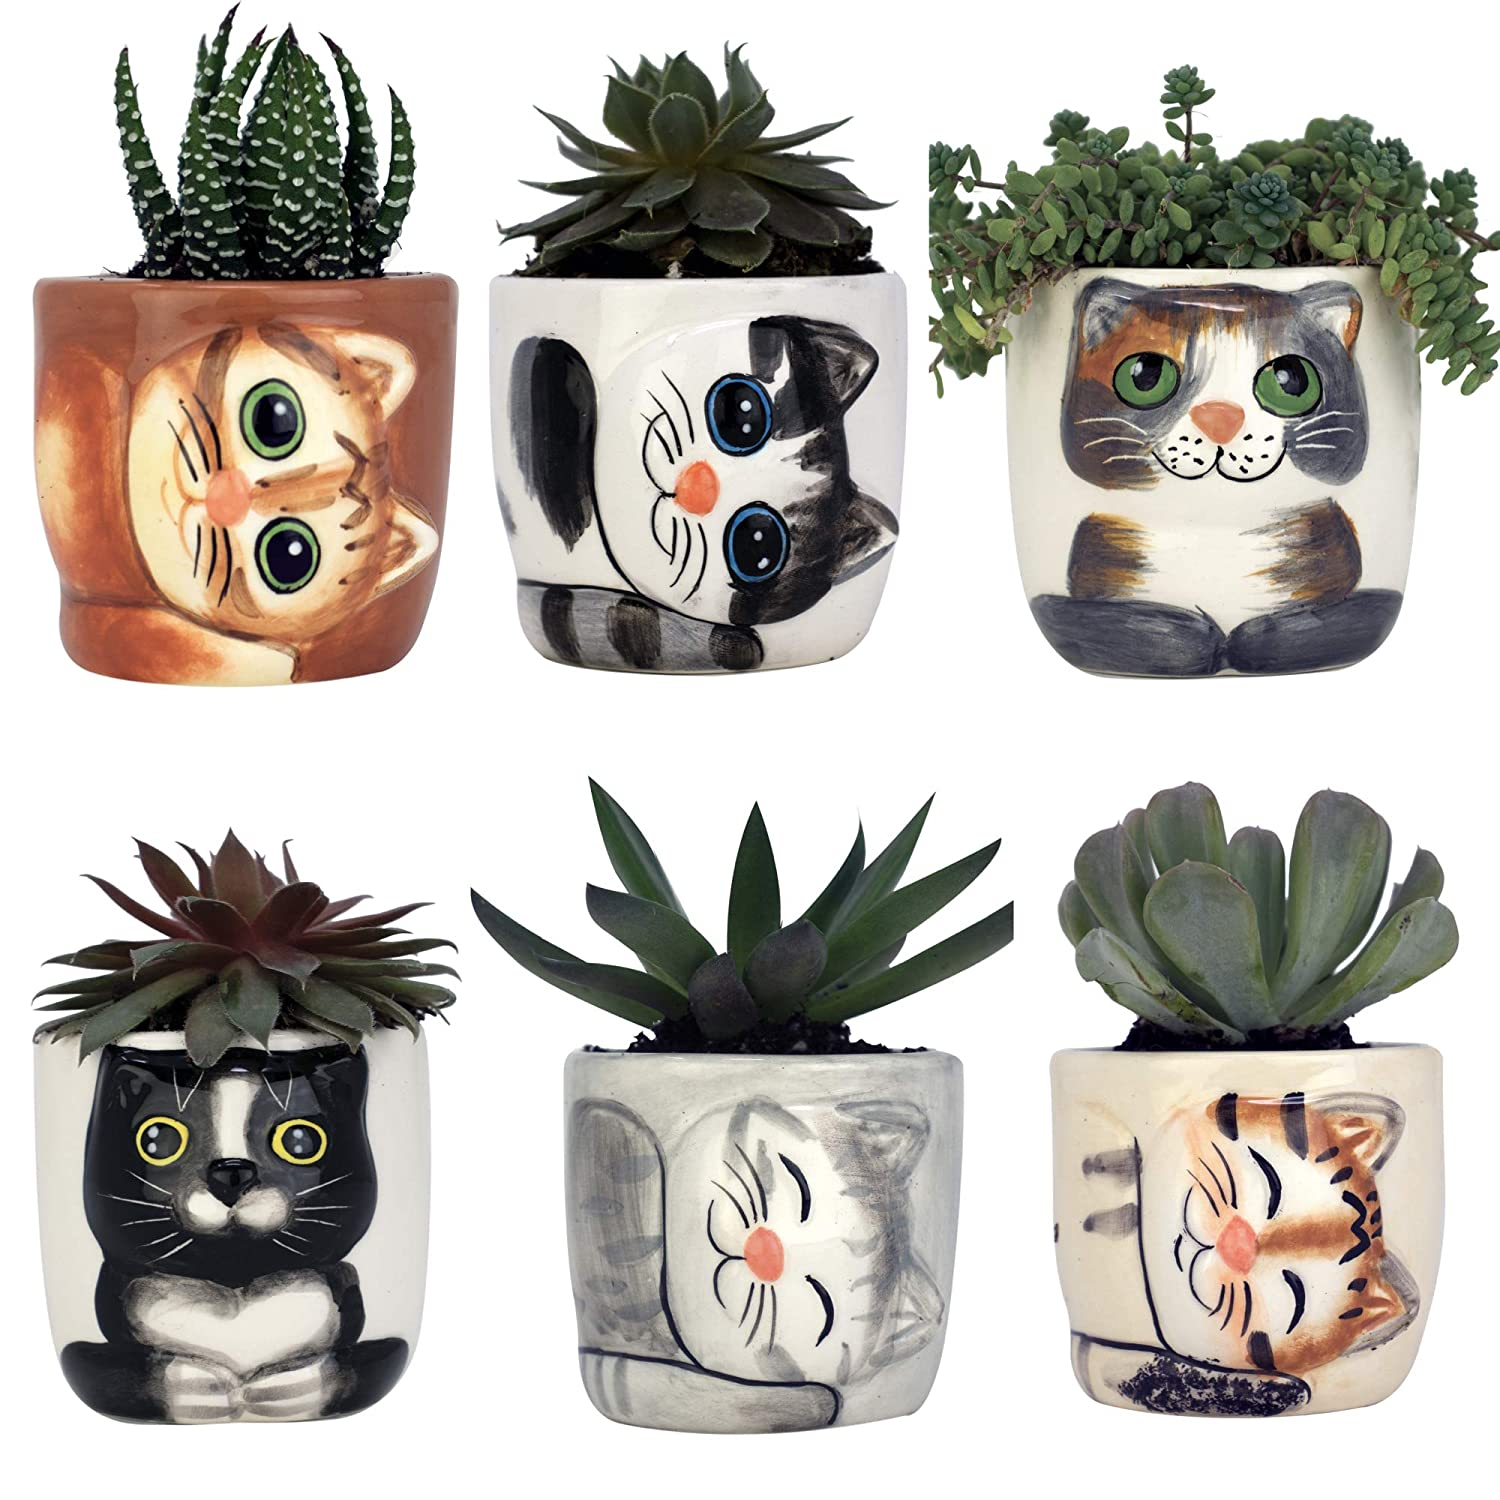 Window Garden - New Small Kitty Pot Collection of 6 – Purrfect for Mini Succulents, African Violets or Small Fairy Garden Plants. Top Quality, Super Cute Planter Gift for Cat Lovers, Christmas.